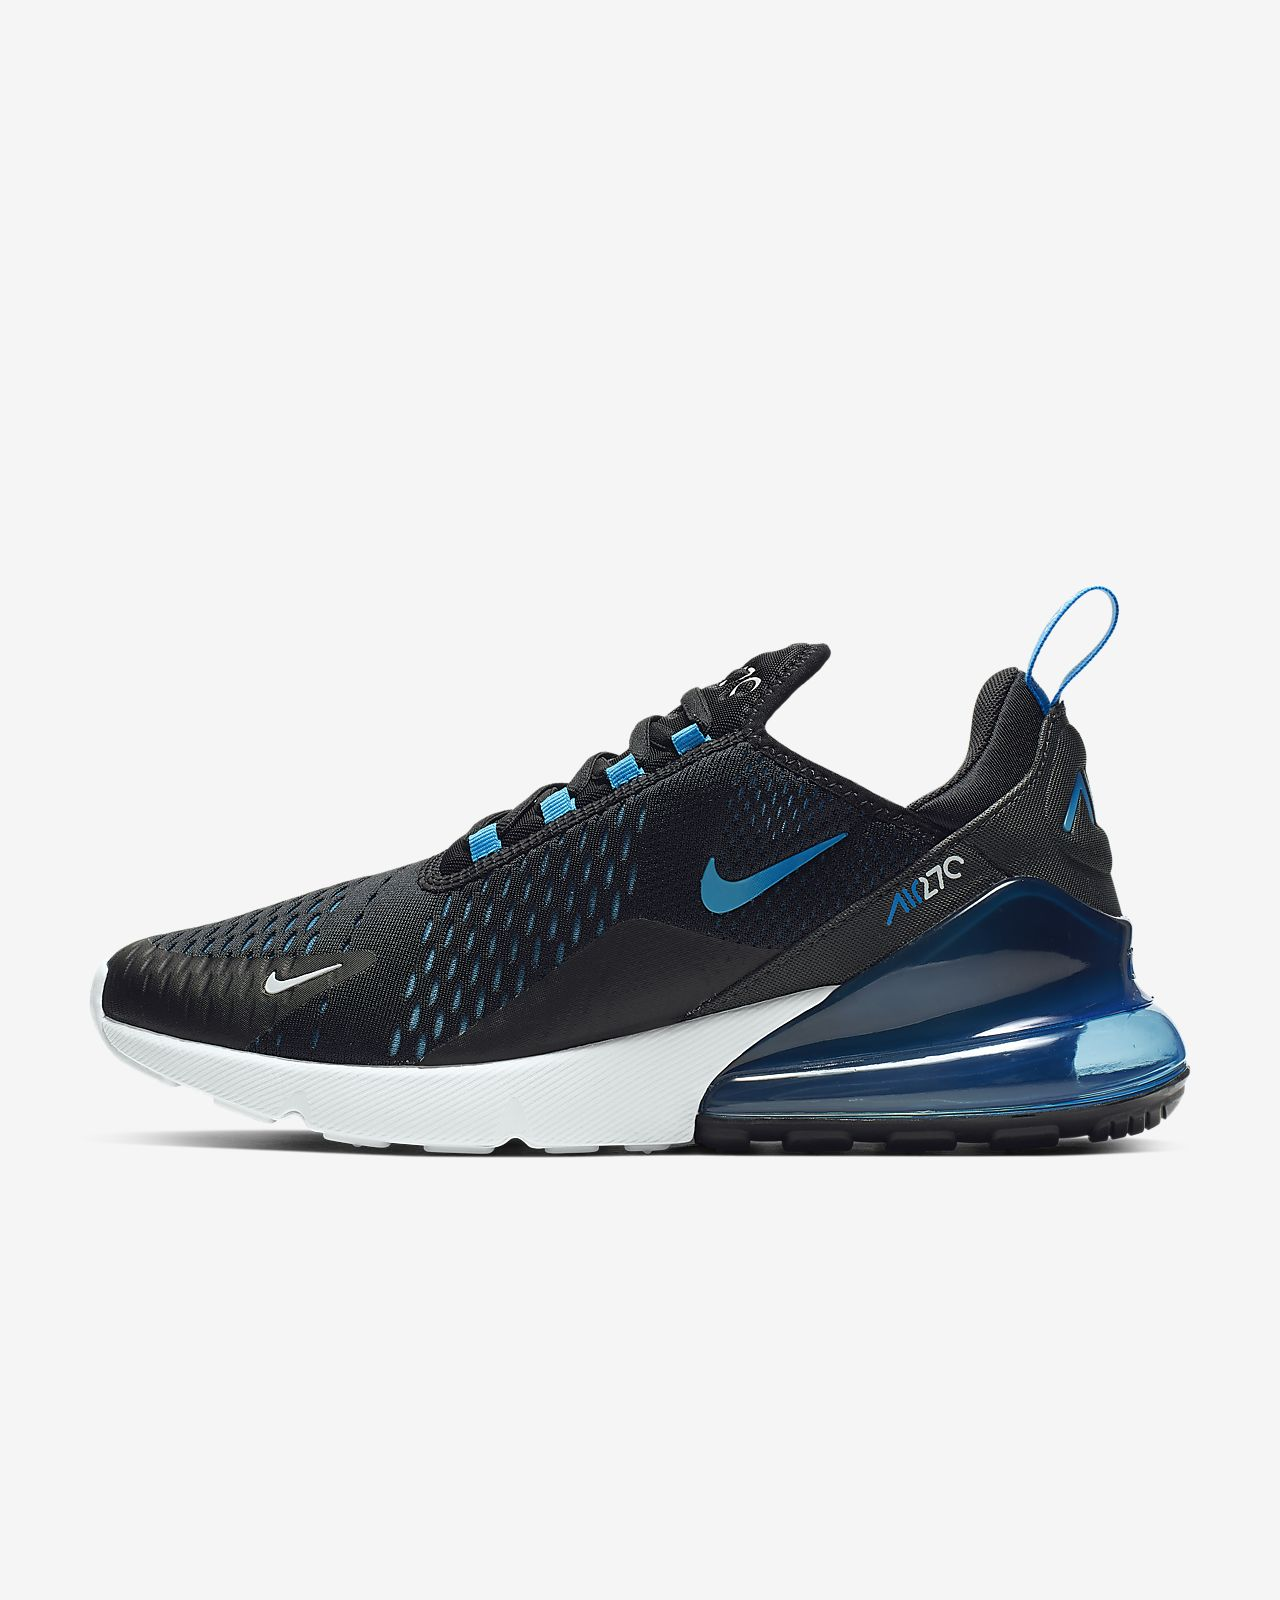 22088cc5b4a Nike Air Max 270 Men s Shoe. Nike.com GB